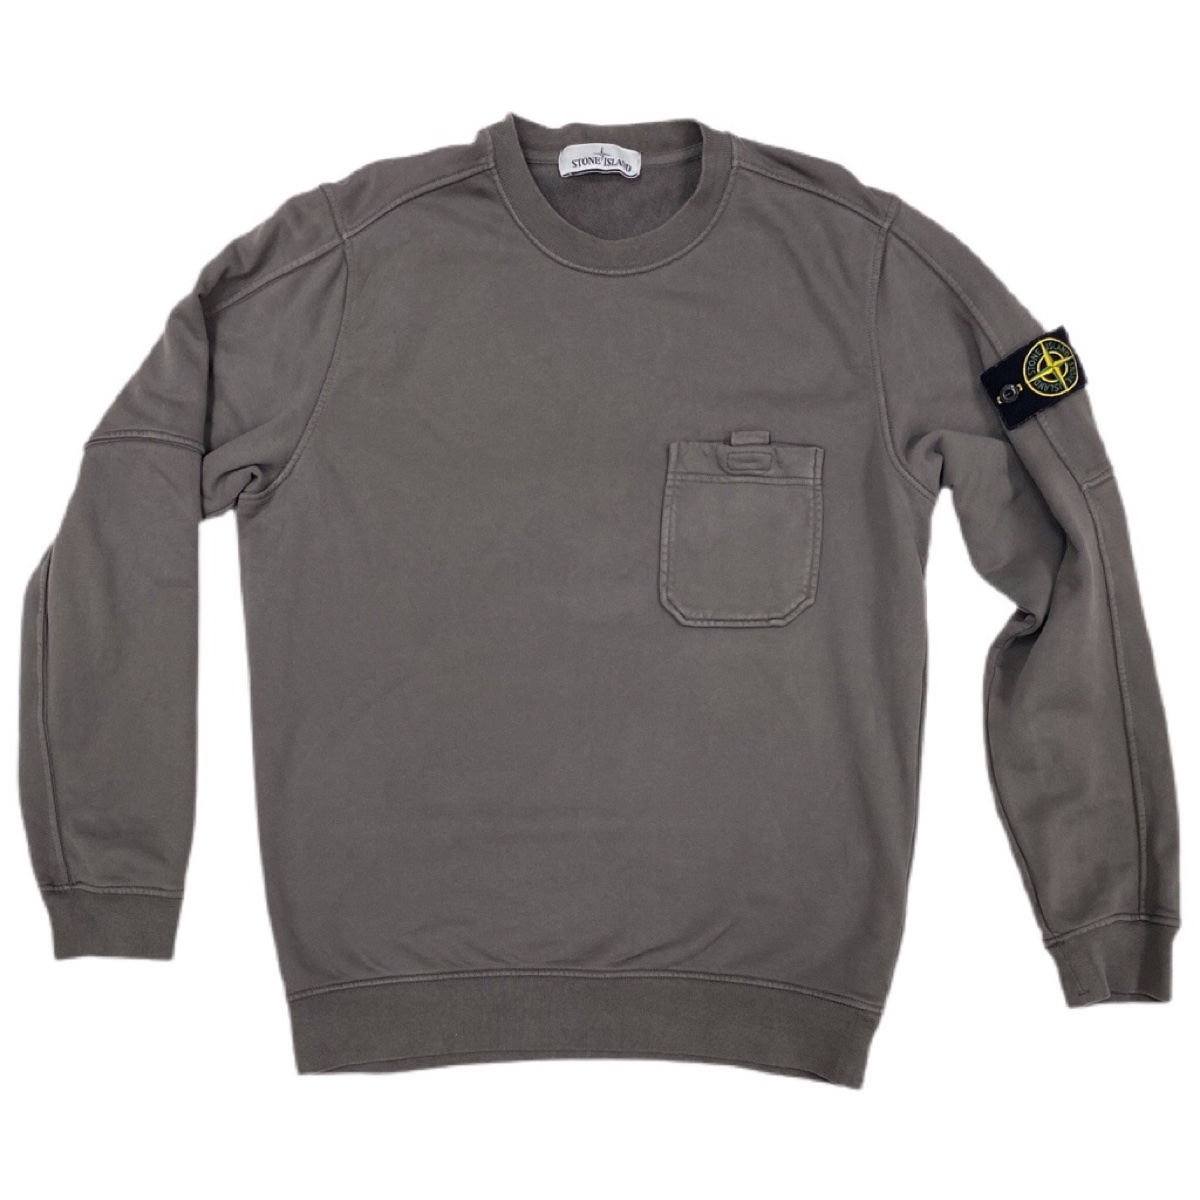 Authentic stone island charcoal jumper